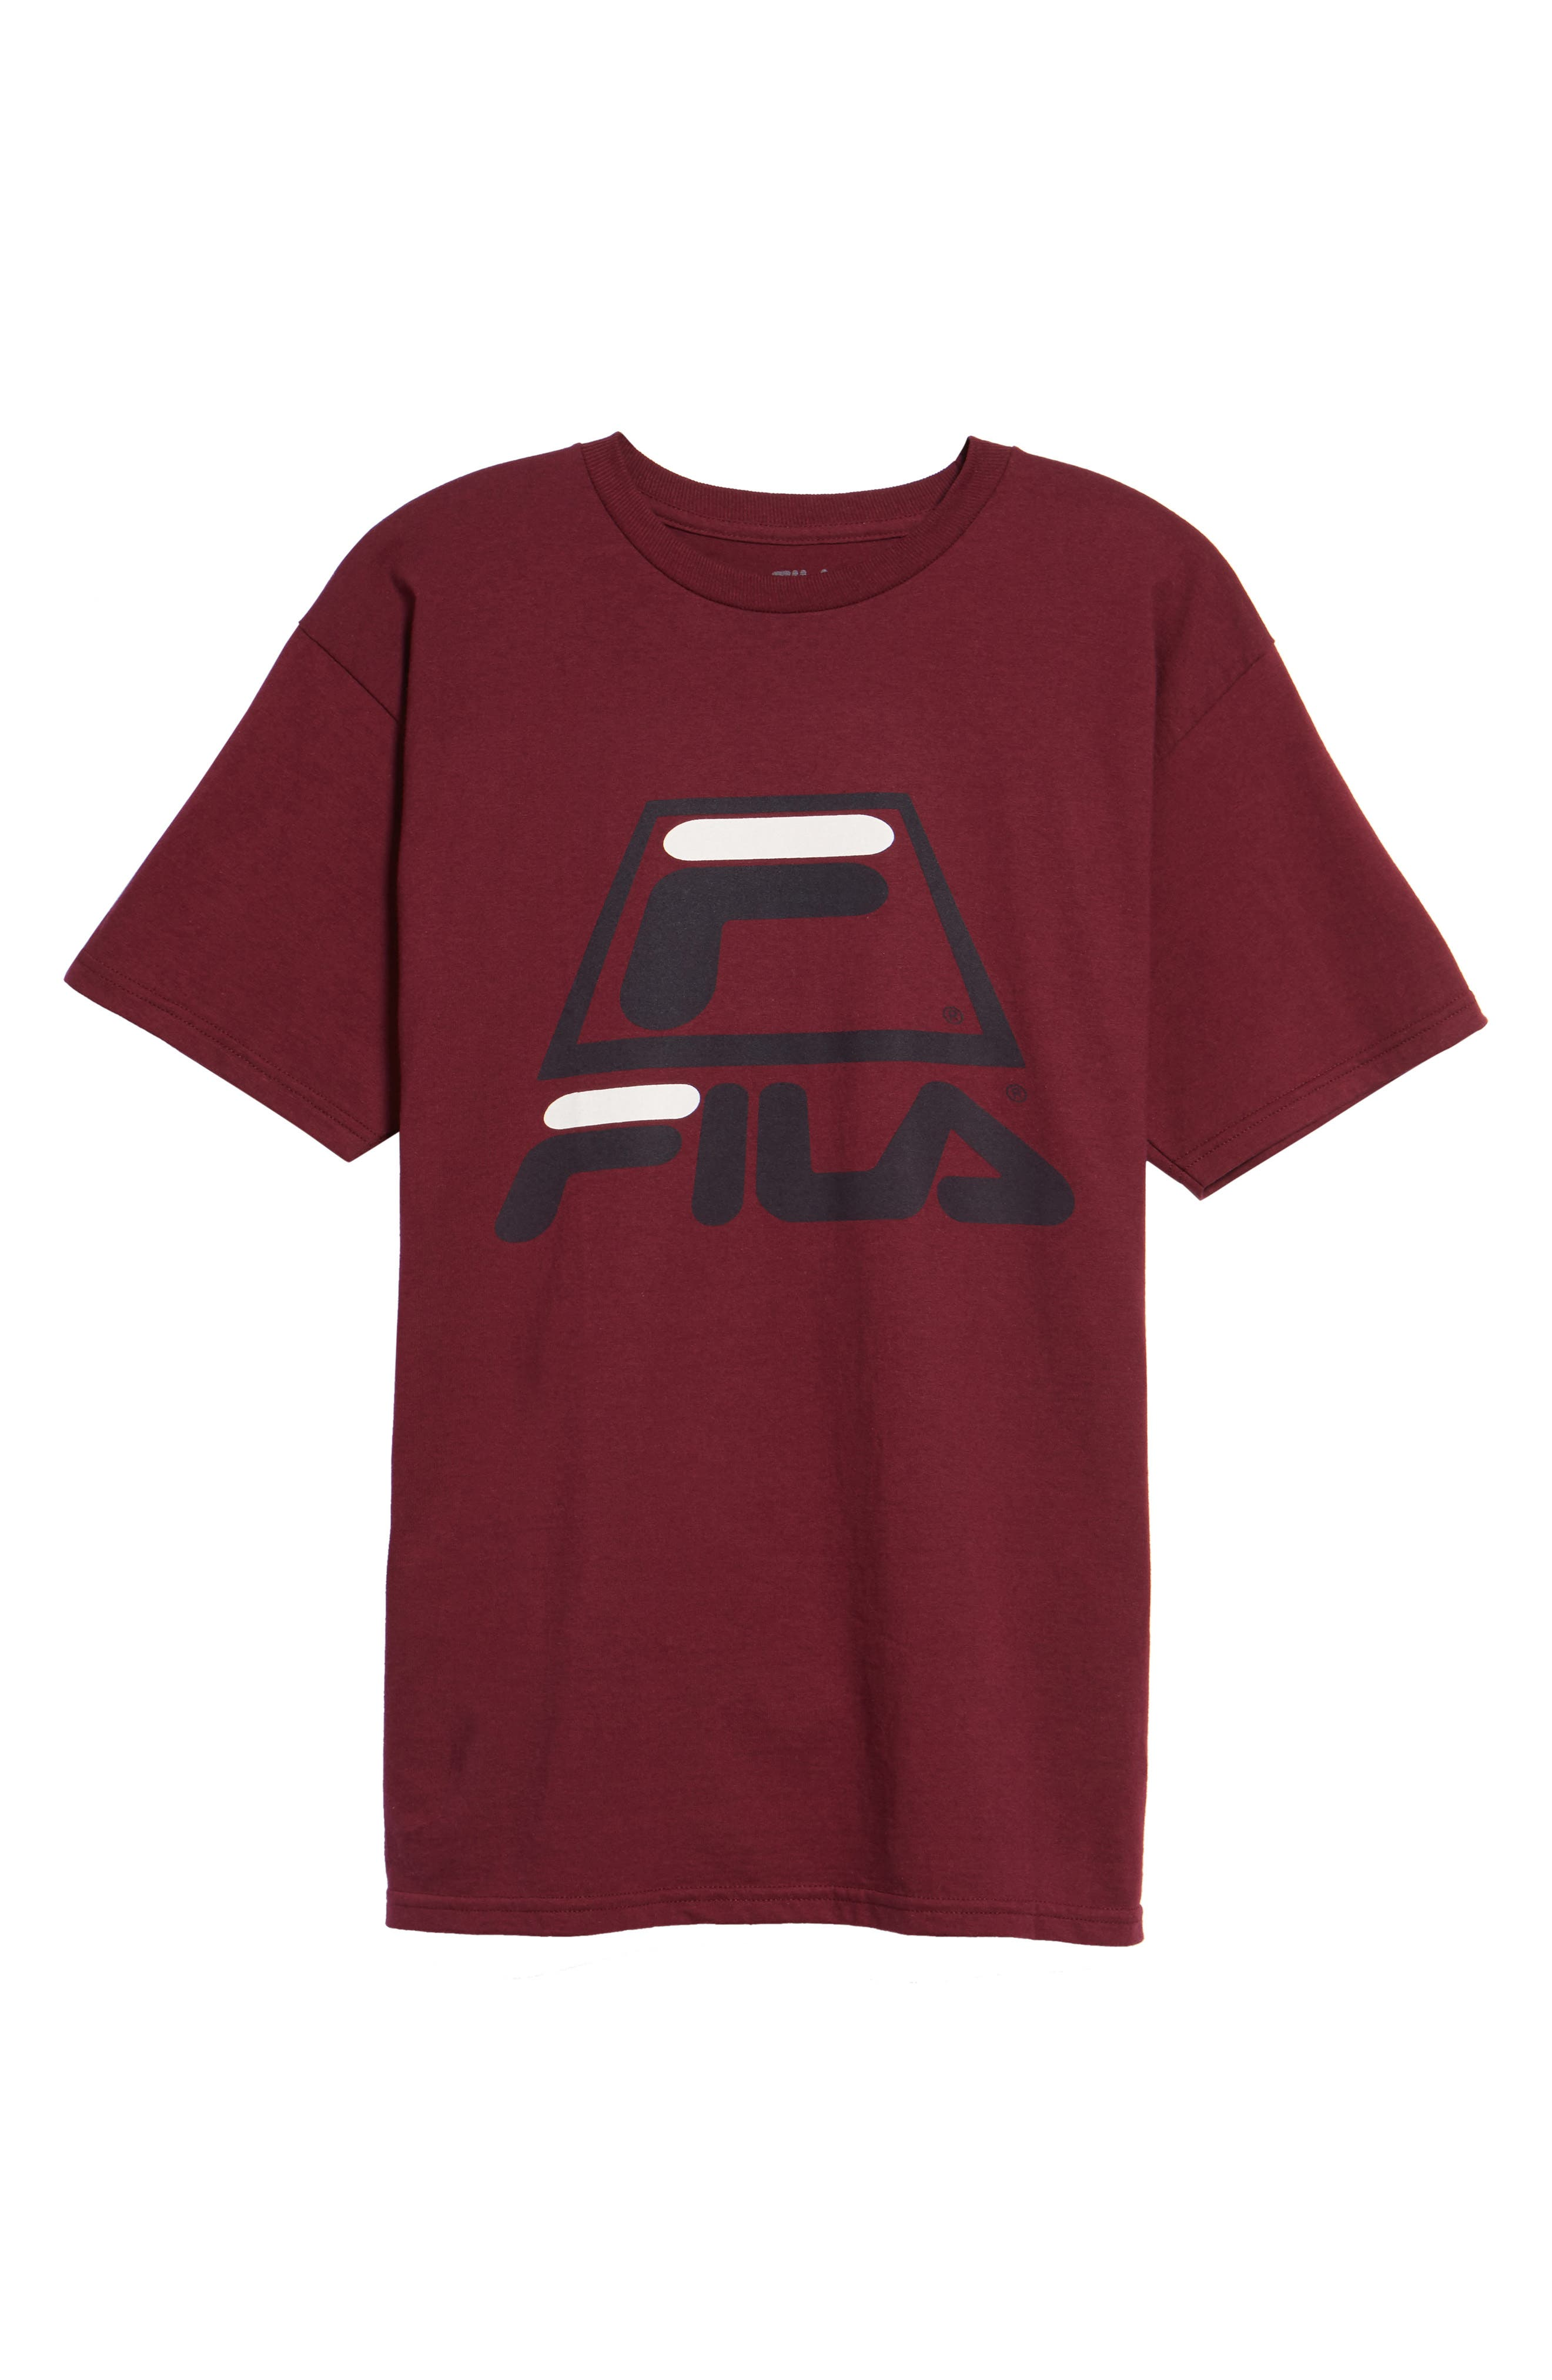 '95 T-Shirt,                             Alternate thumbnail 11, color,